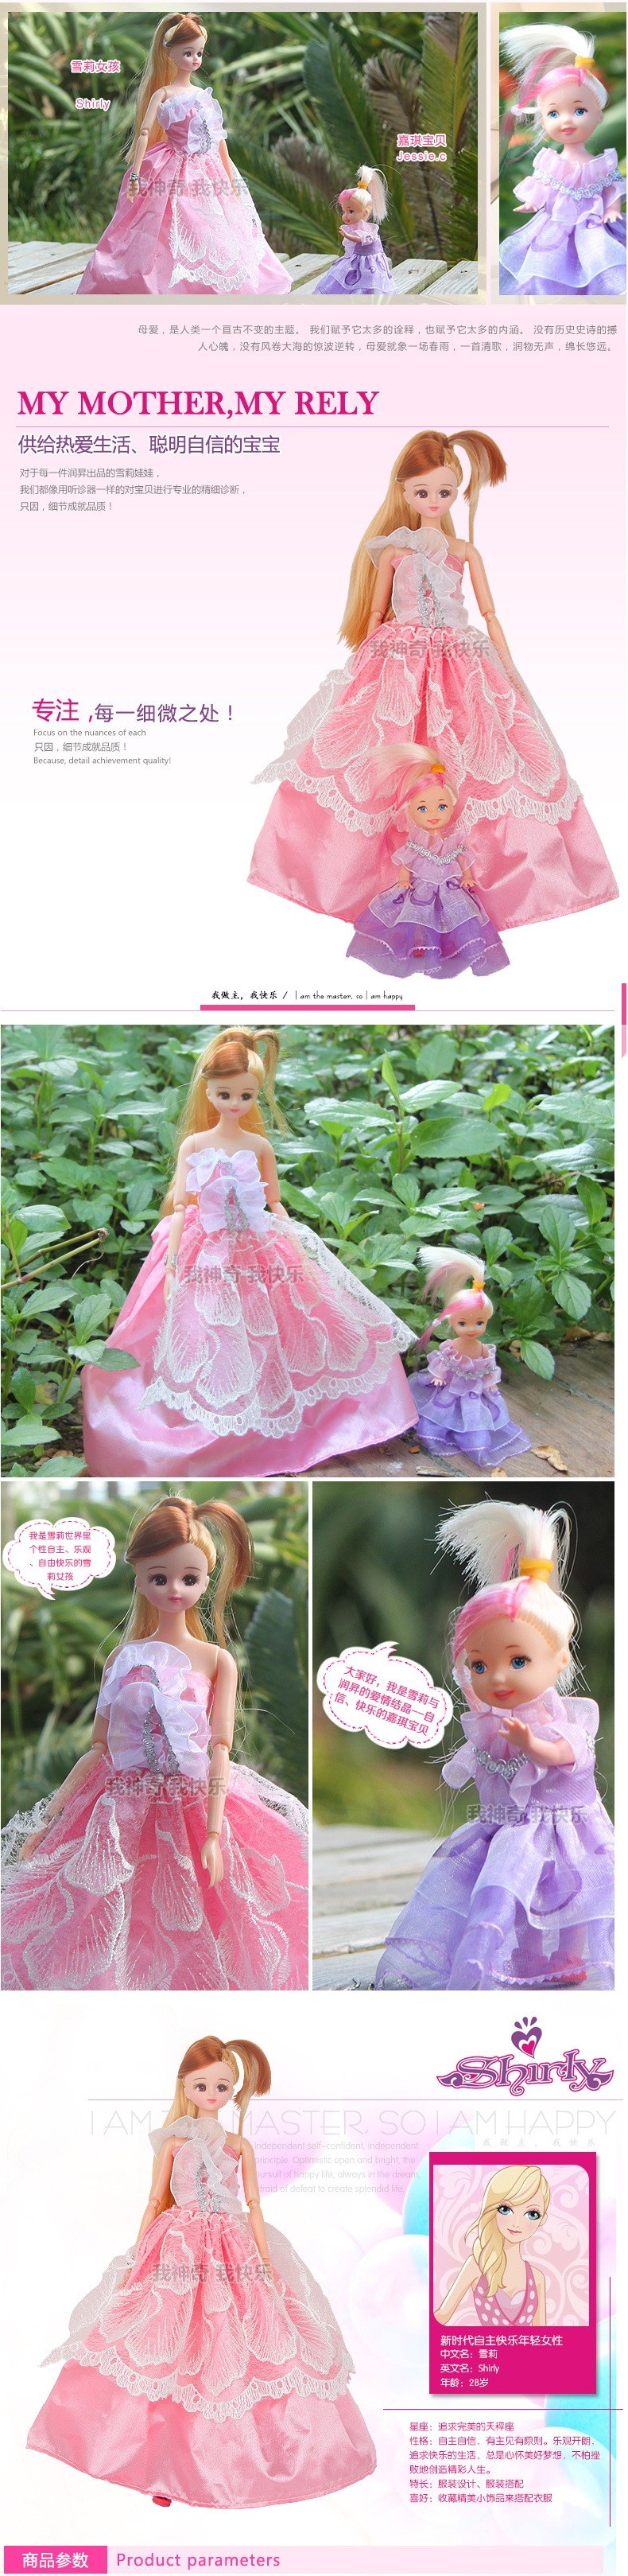 Vogue 12 Joints moveable Plastic Doll diy Play home set Dreamhouse with equipment comb bag costume up for barbie child toys